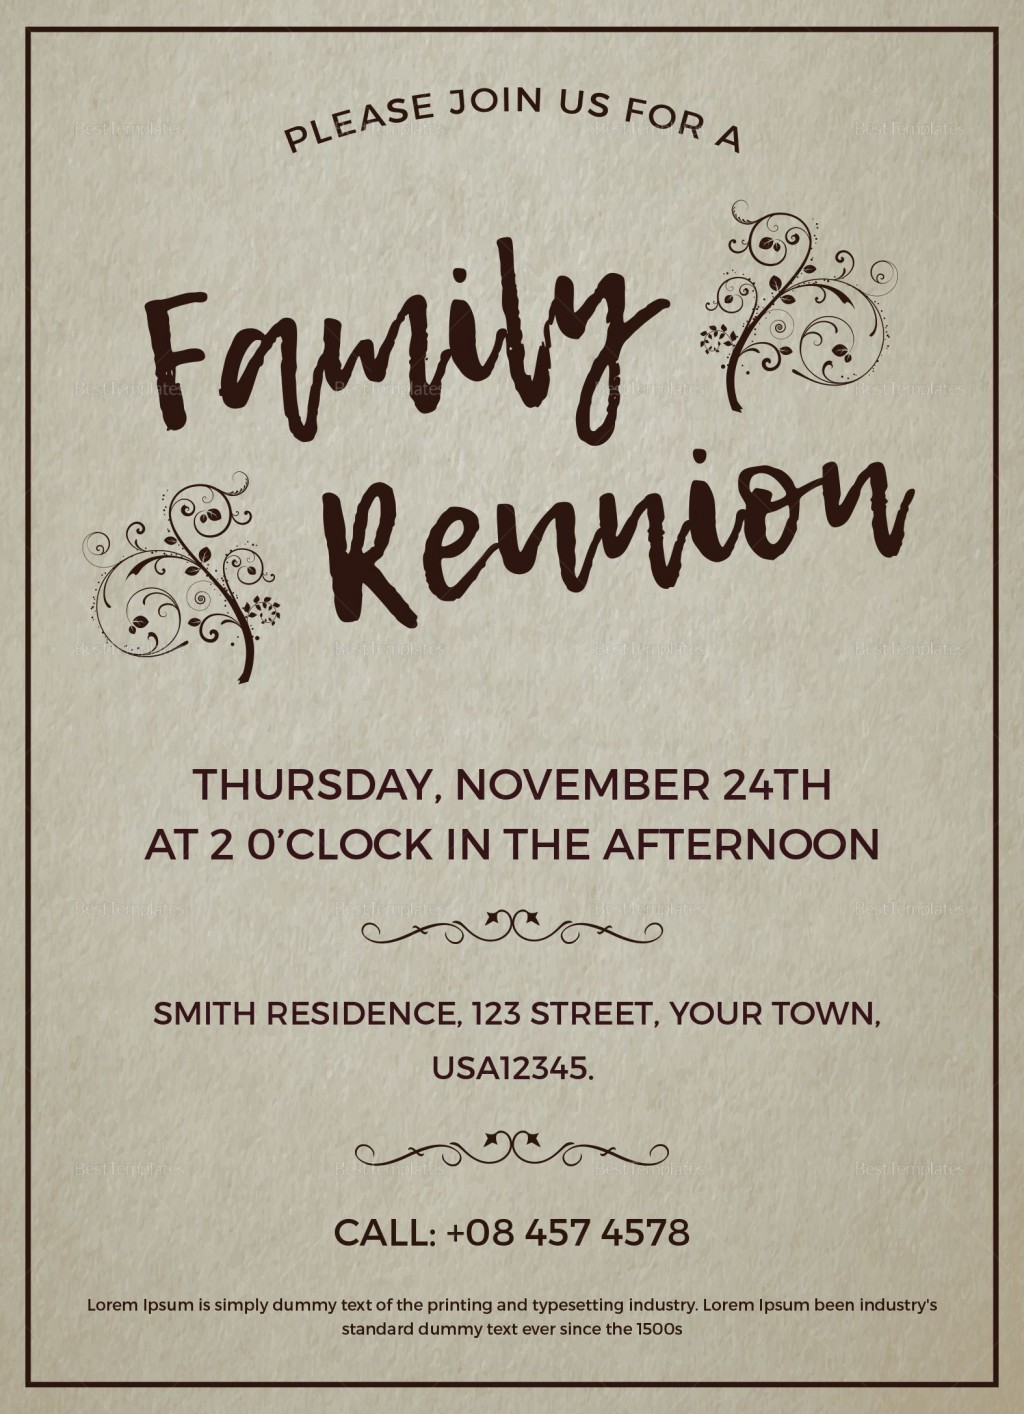 002 Formidable Family Reunion Flyer Template Word High Def Large